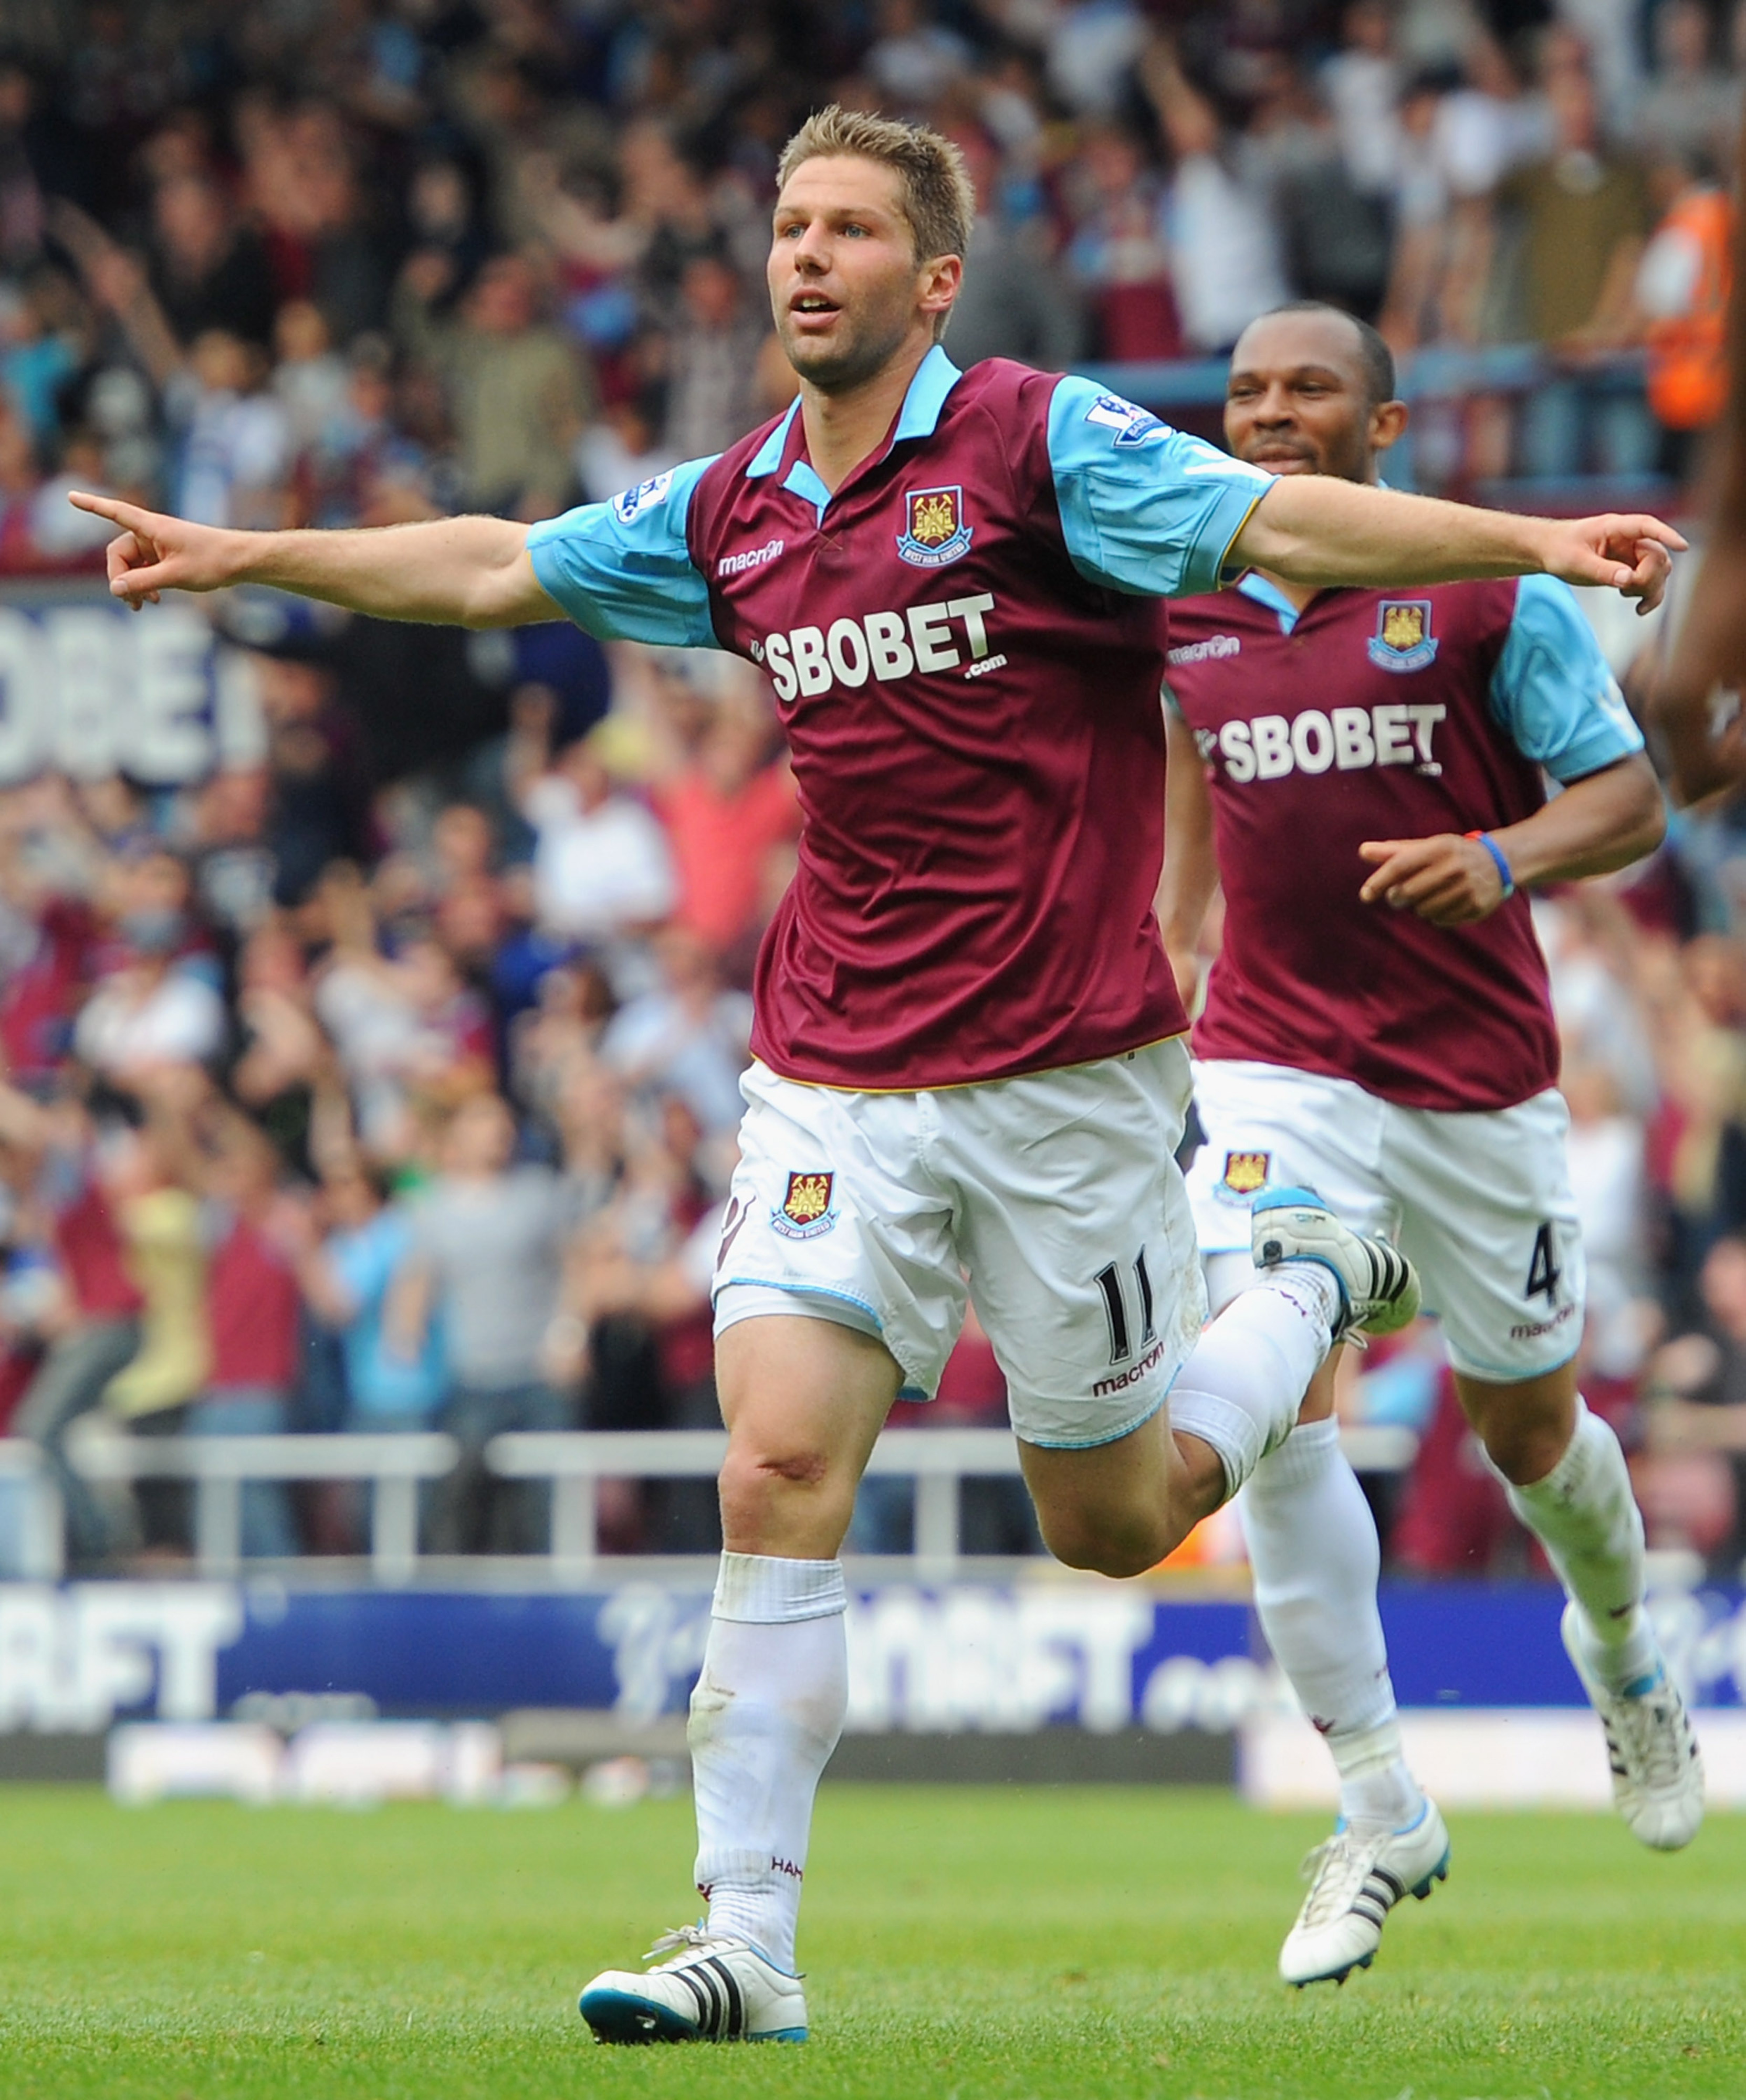 Thomas Hitzlsperger was on the German World Cup team in 2006 before coming out as gay.